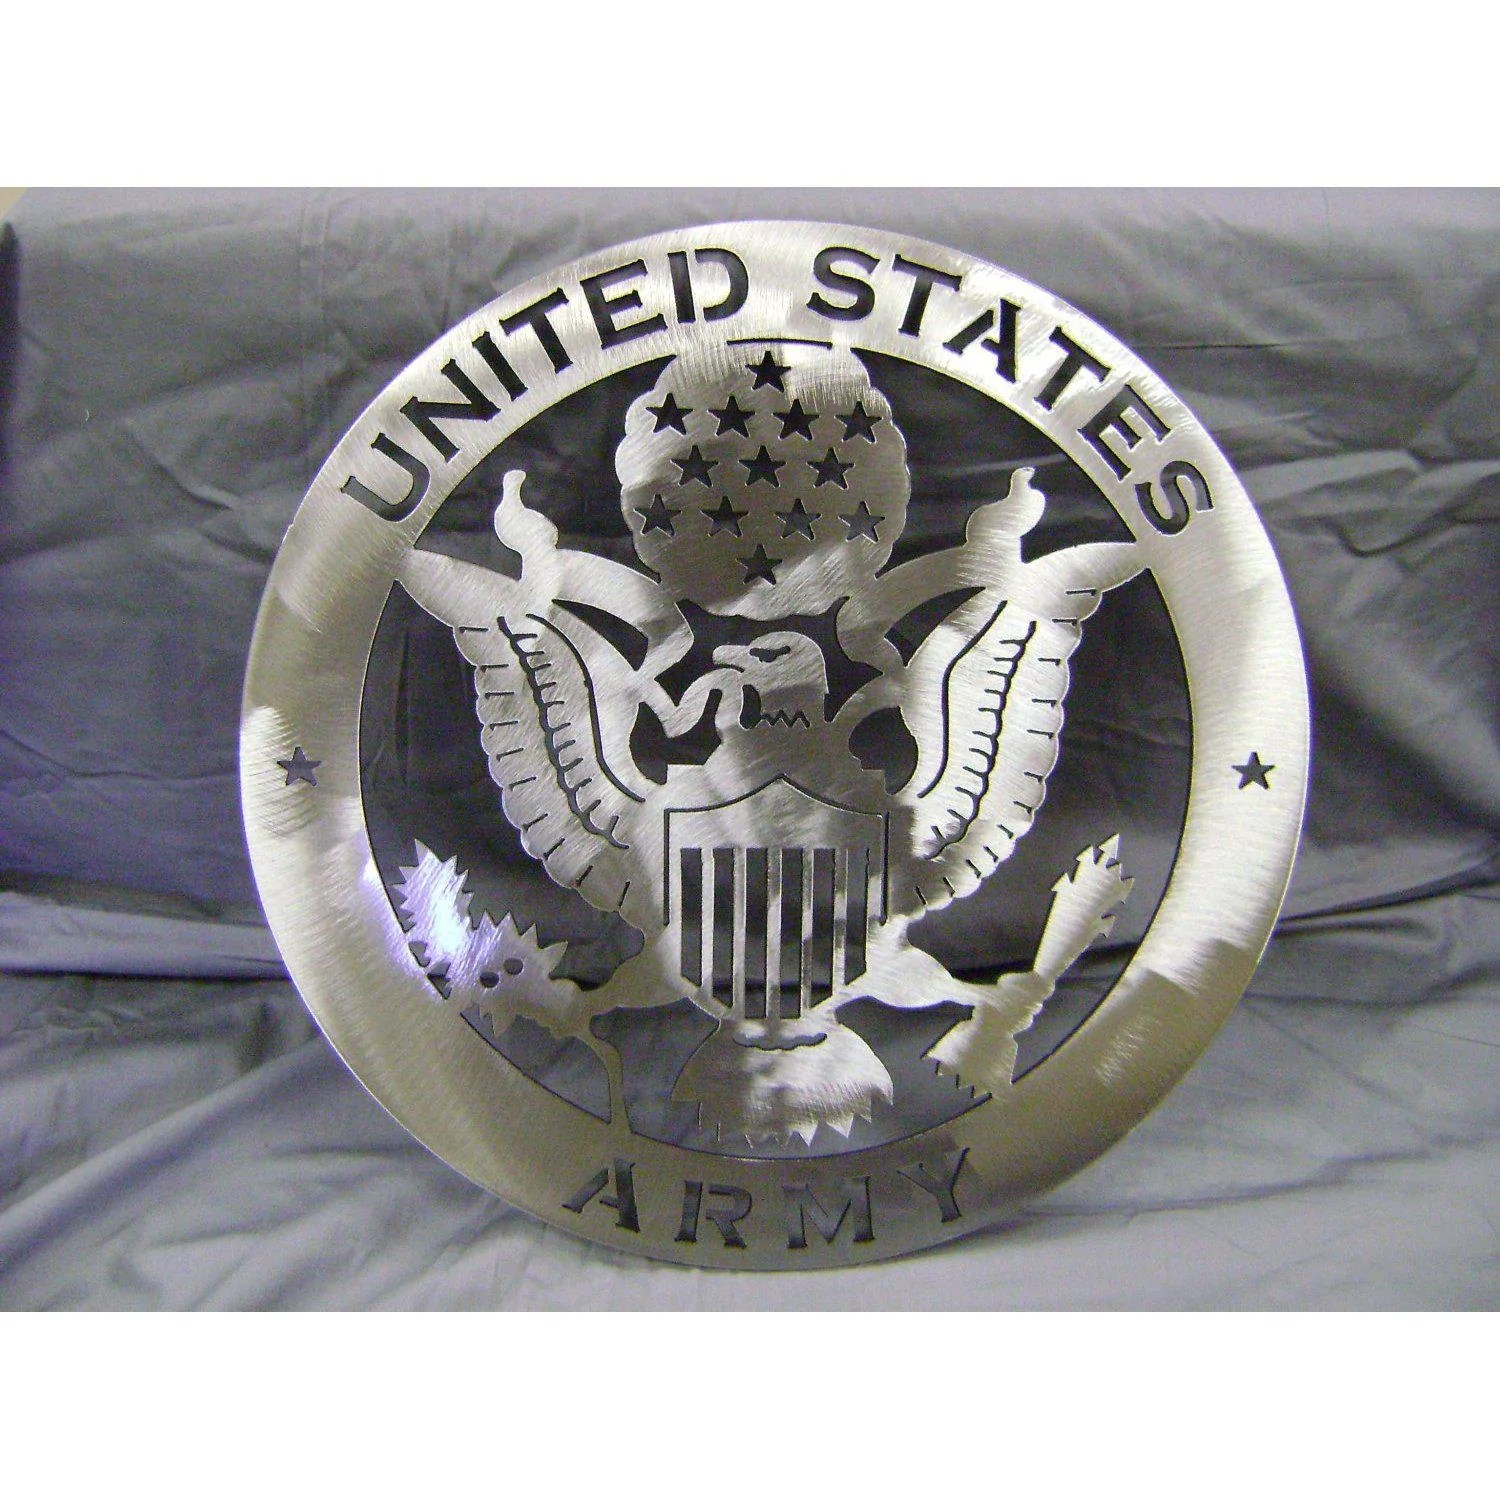 United States Army Emblem Military Sign Stainless Steel Metal Wall Cascade Manufacturing